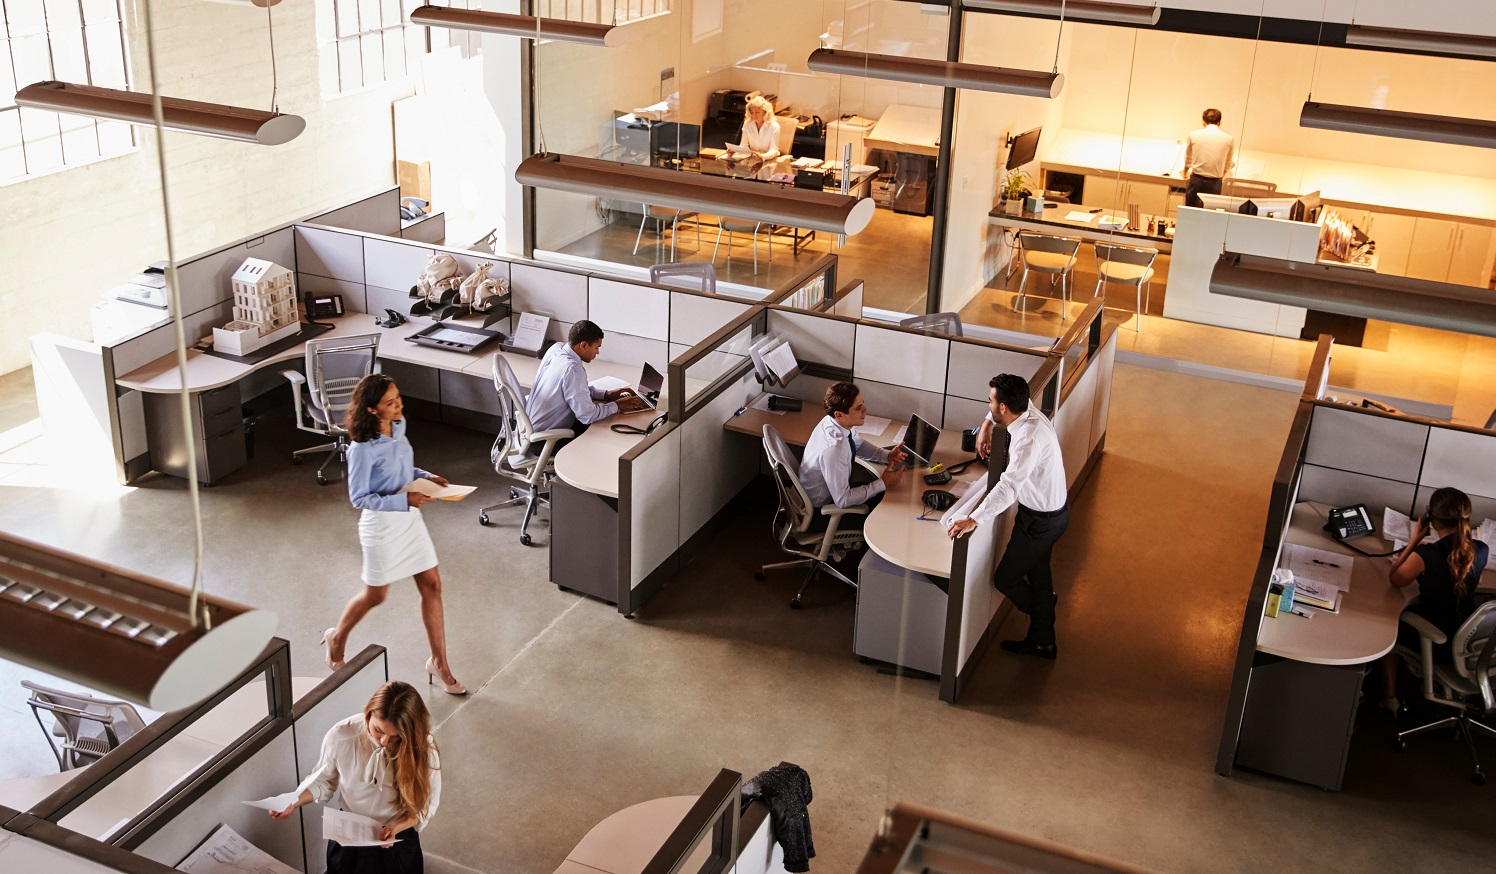 Image of office at work with engaged employees